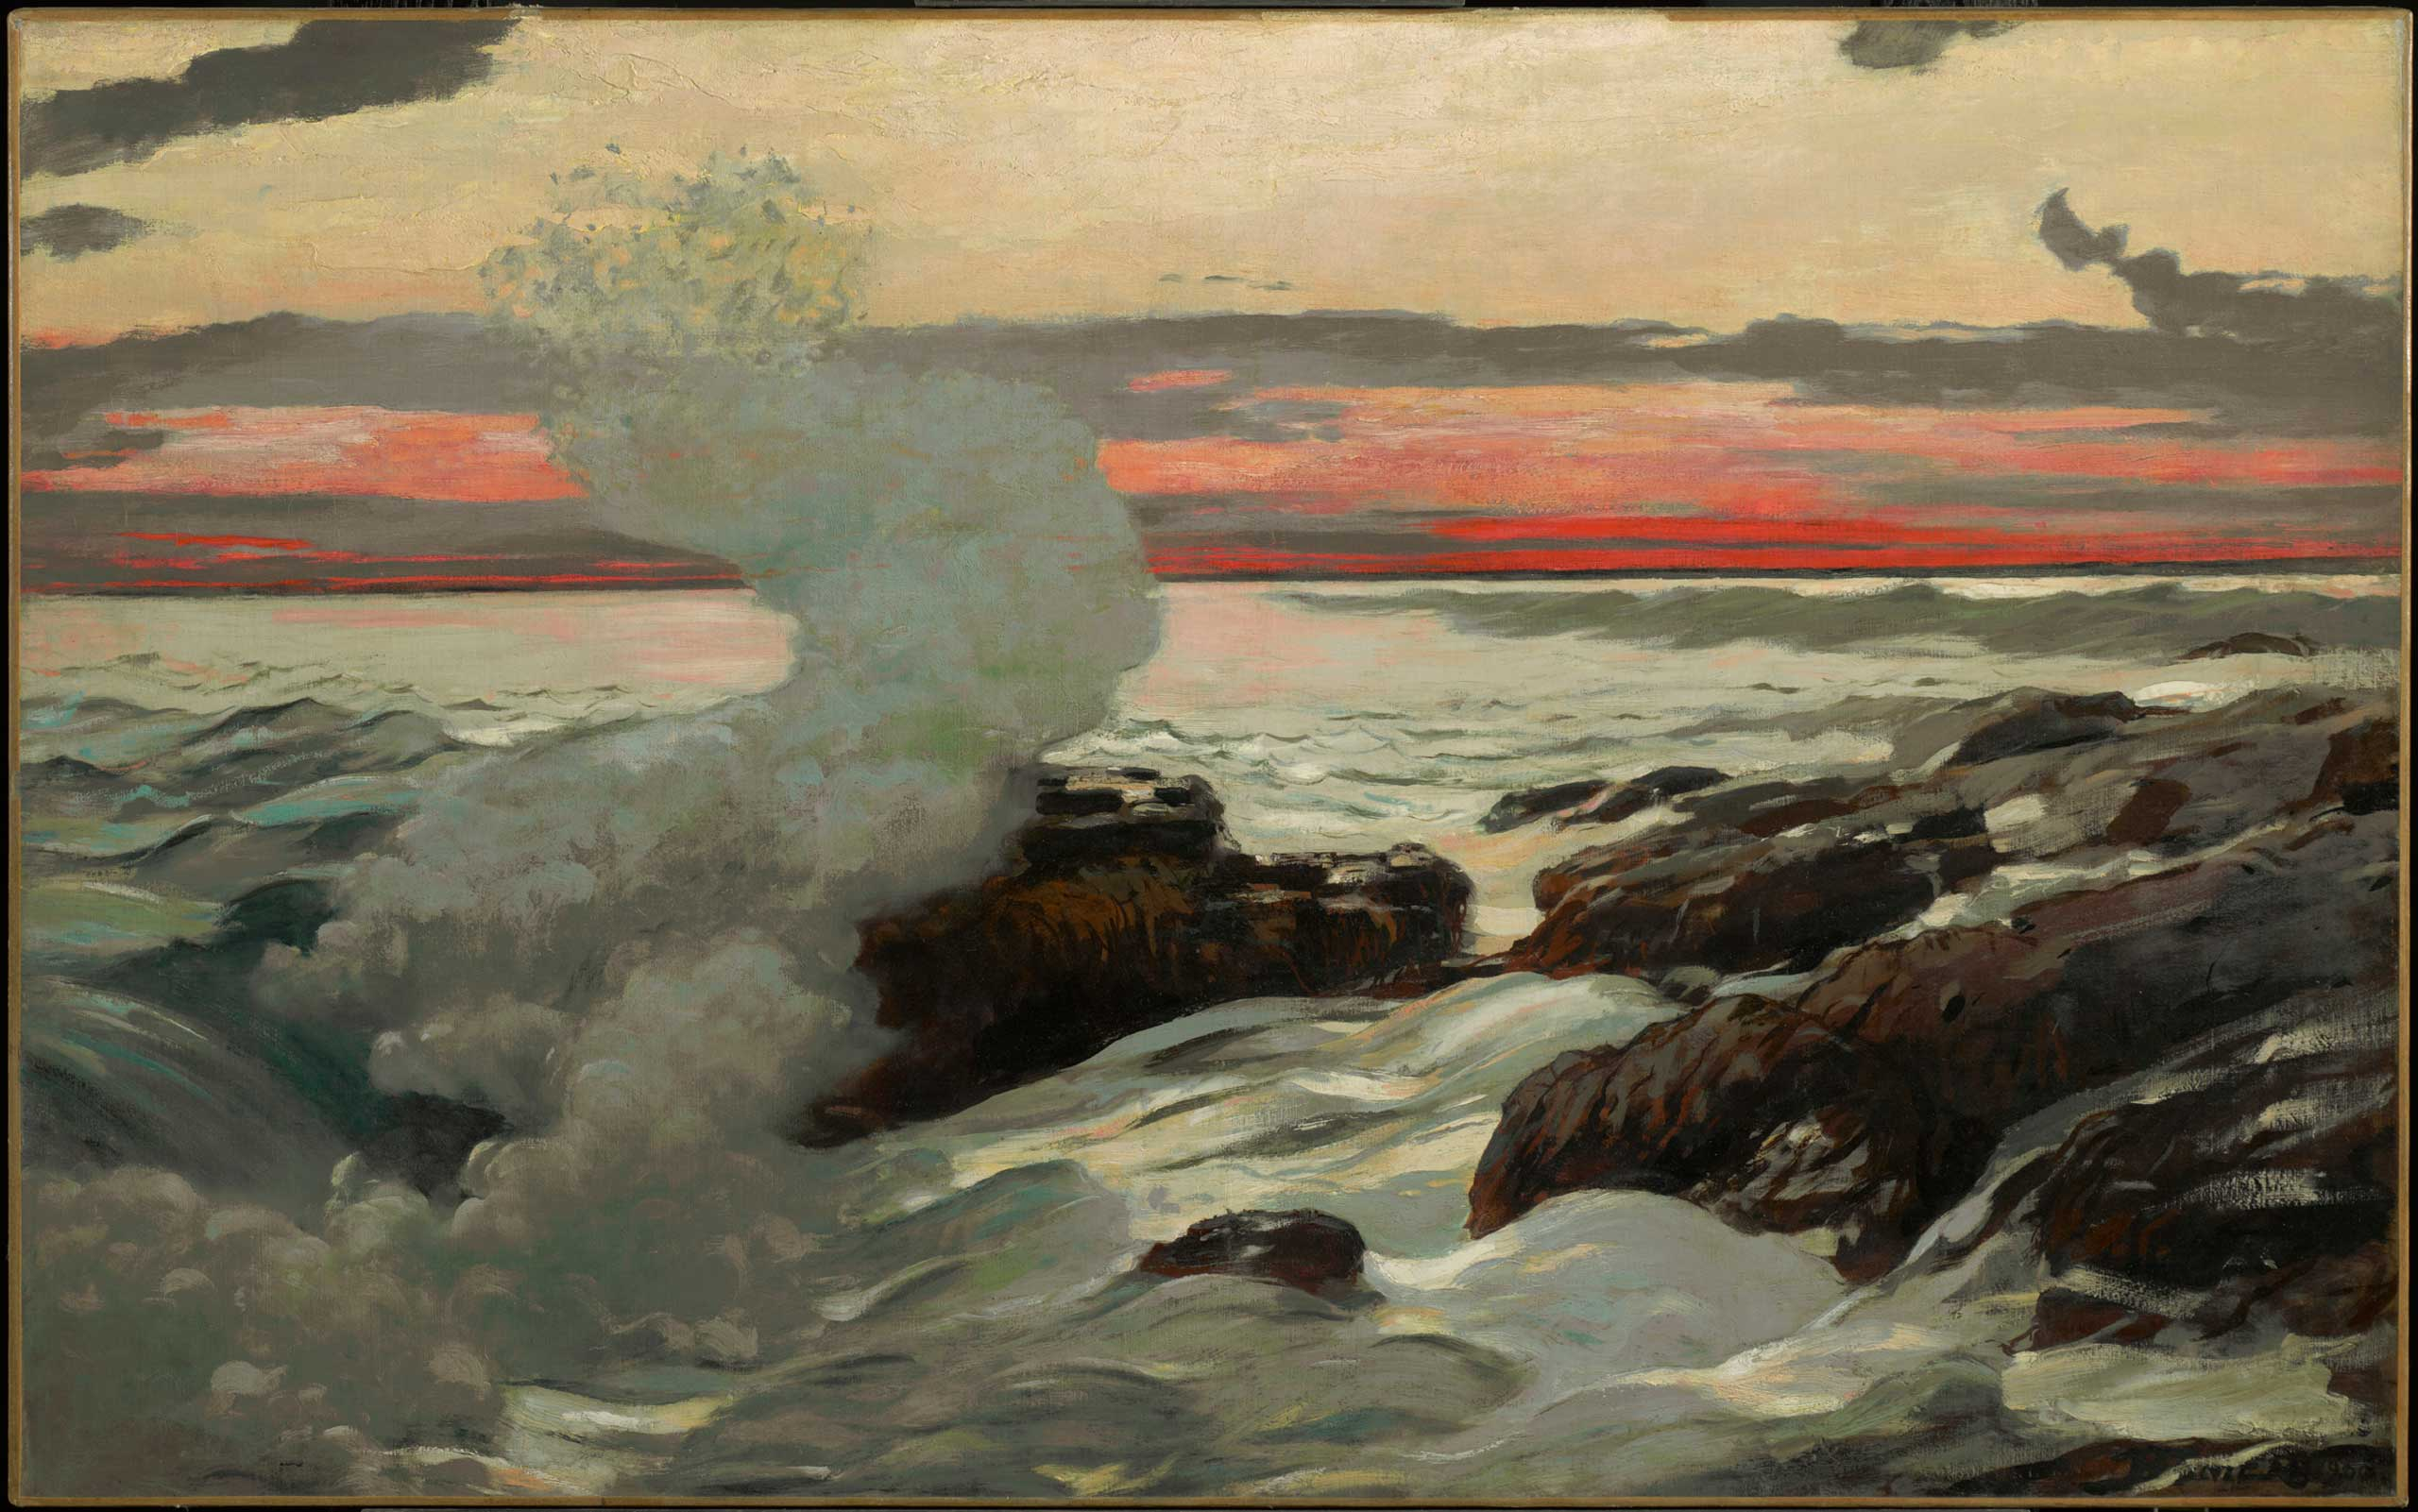 Winslow Homer (American, 1836–1910), West Point, Prout's Neck, 1900. Oil on canvas, 30 1/16 x 48 1/8 in. Clark Art Institute, Williamstown, Massachusetts, 1955.7